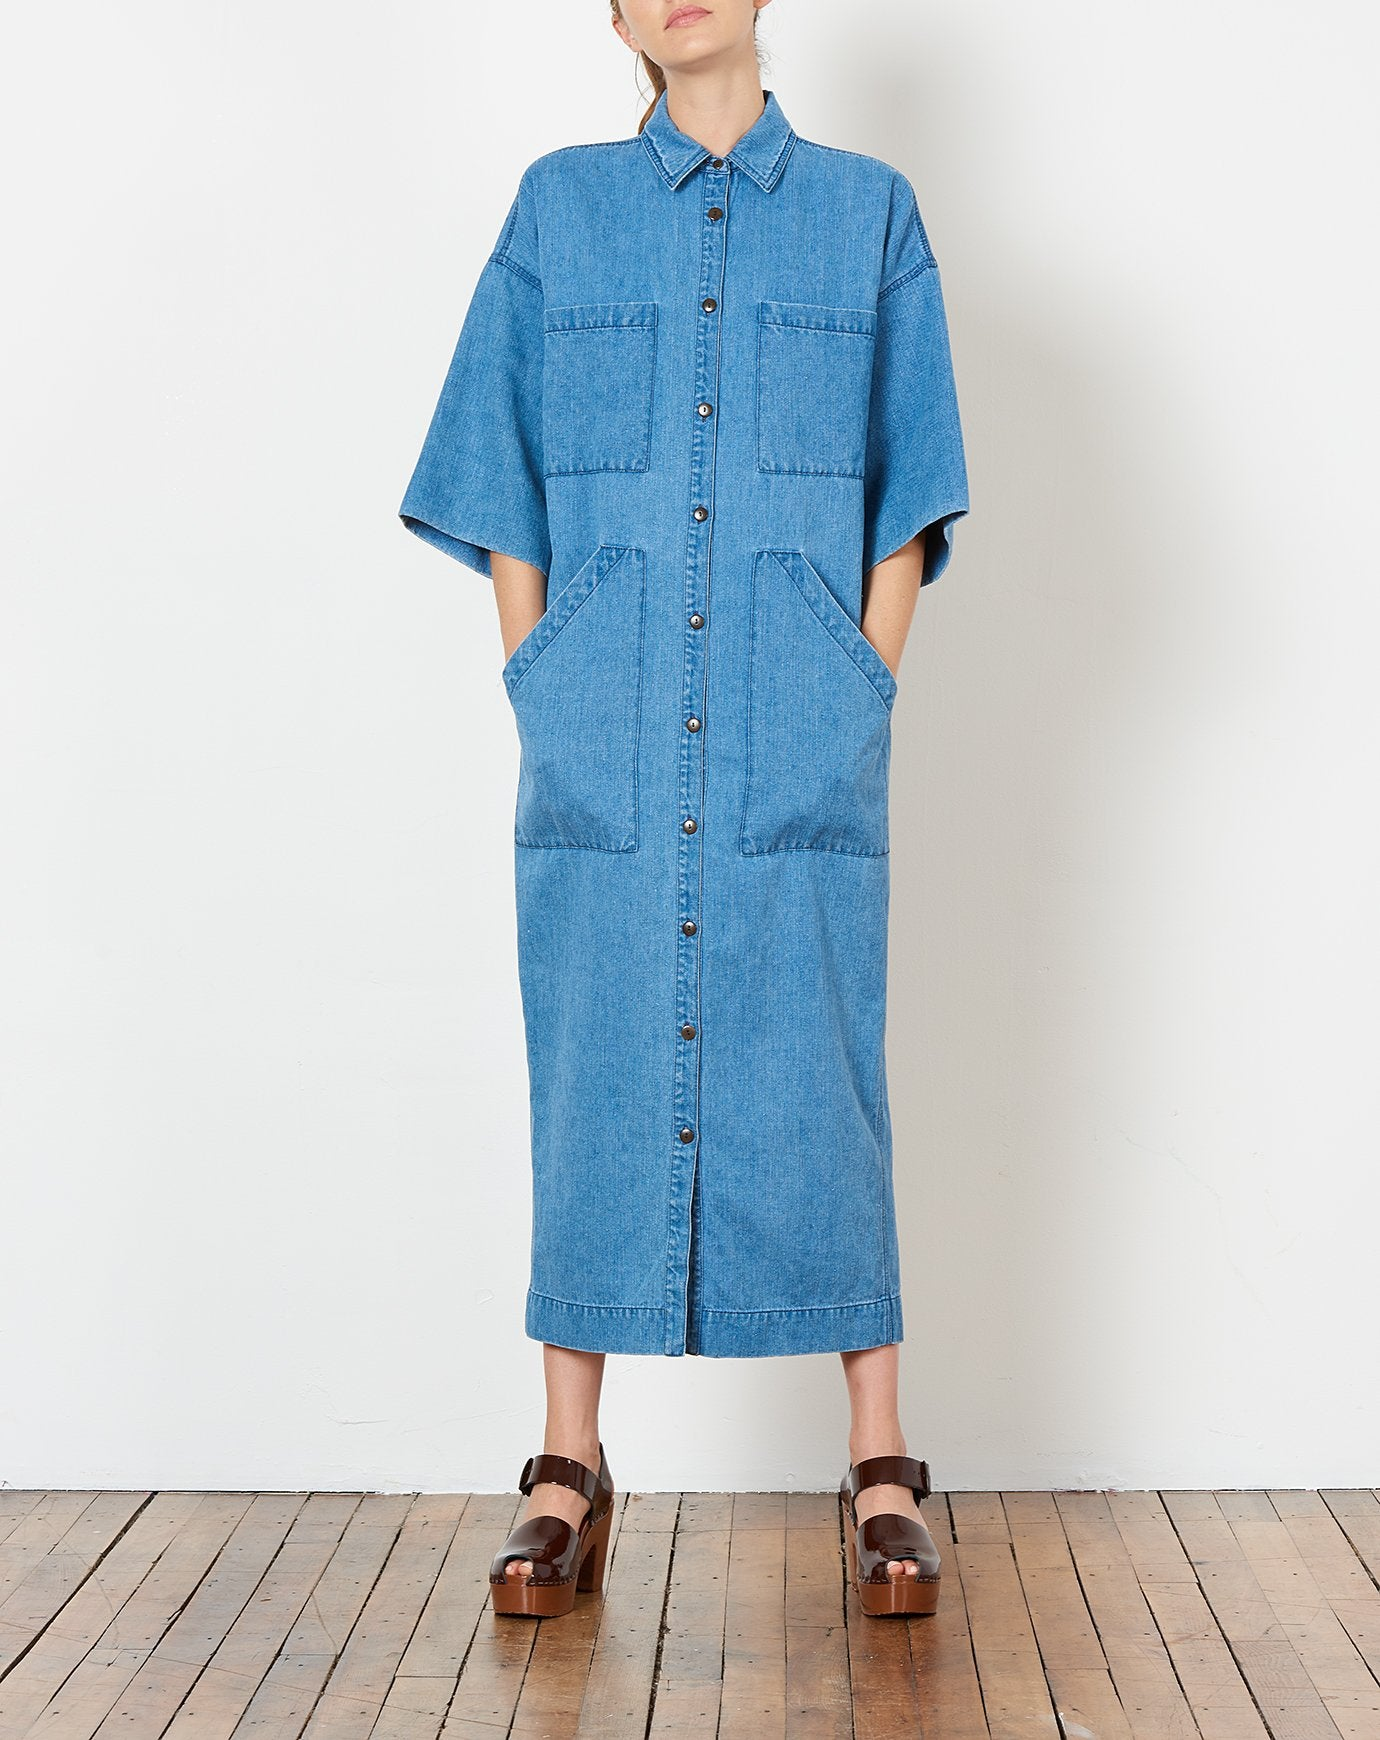 Amelia Shirt Dress in Denim